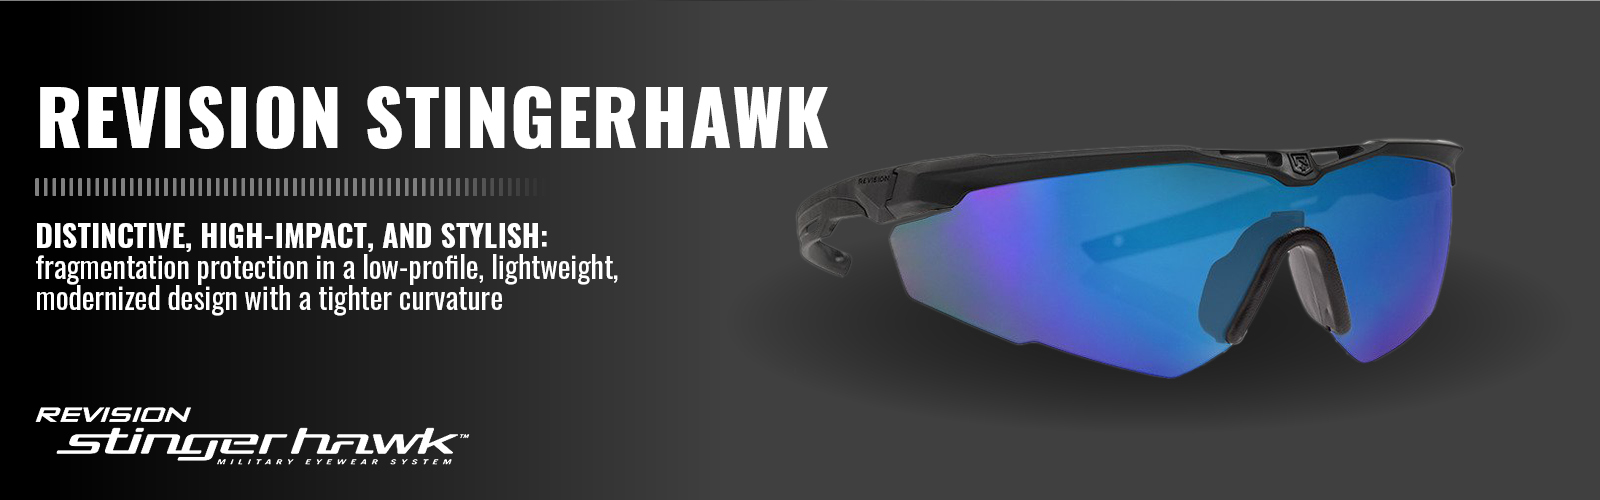 Revision Stingerhawk Glasses